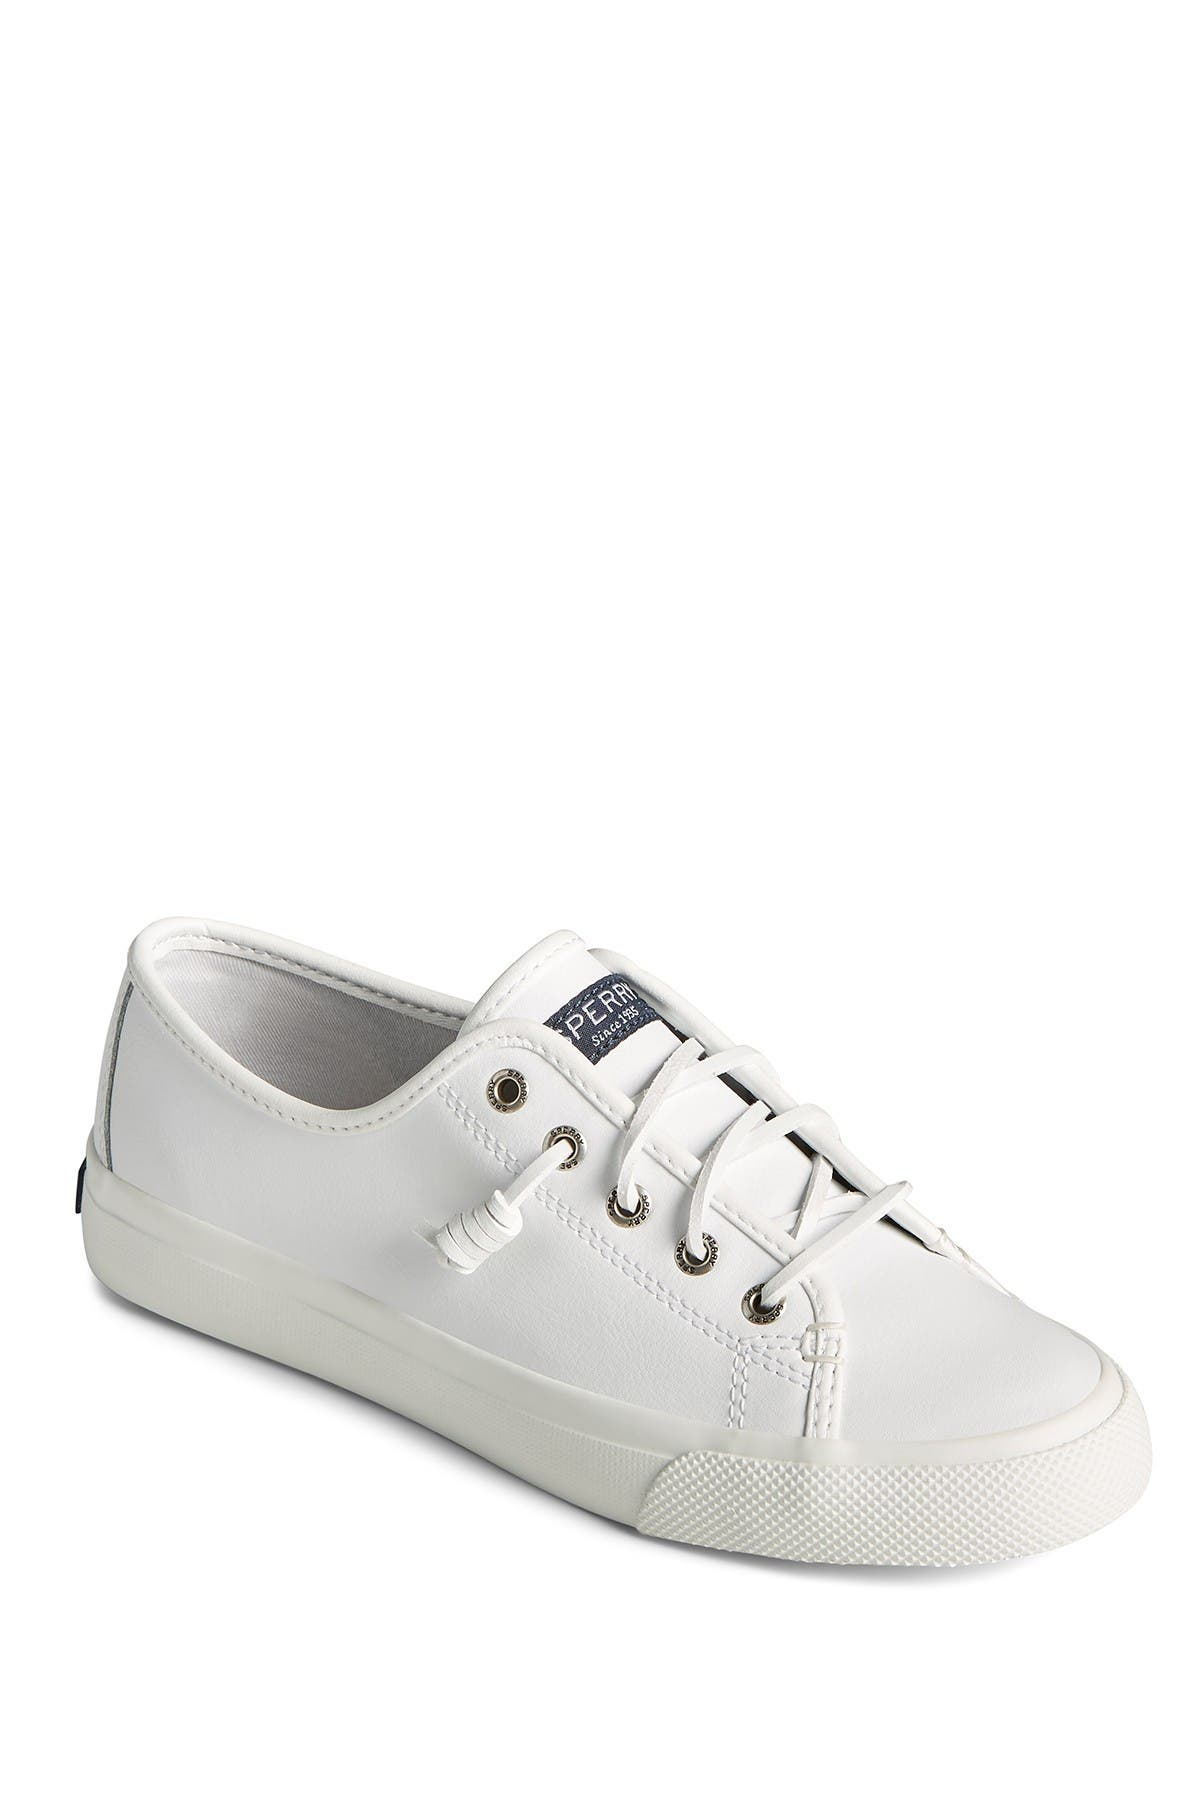 Sperry | Seacoast Leather Sneaker